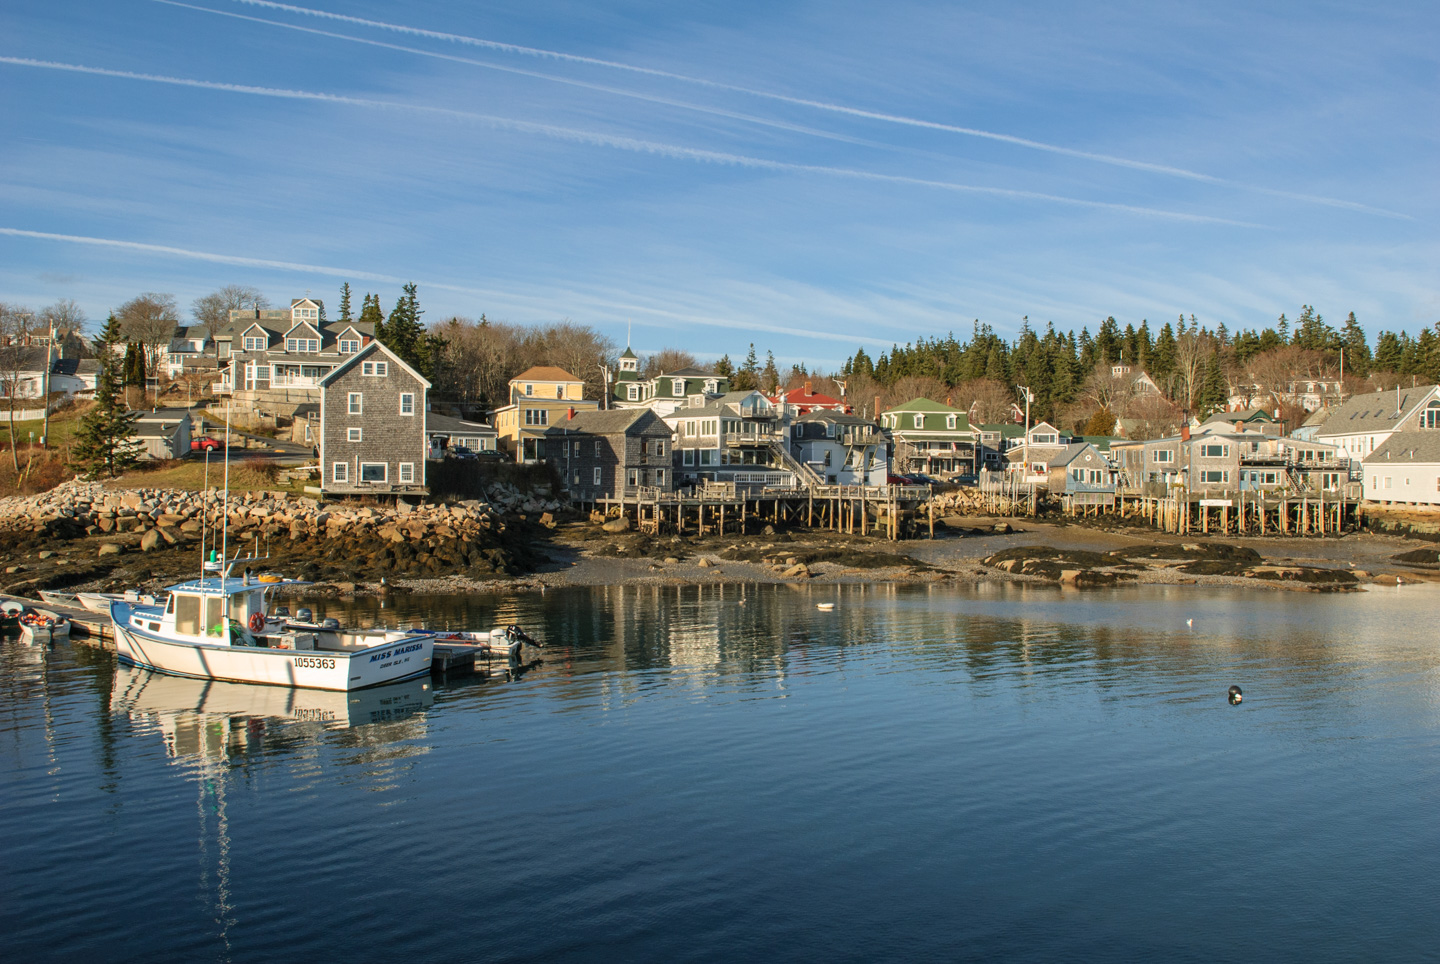 View across harbor of Stonington Maine